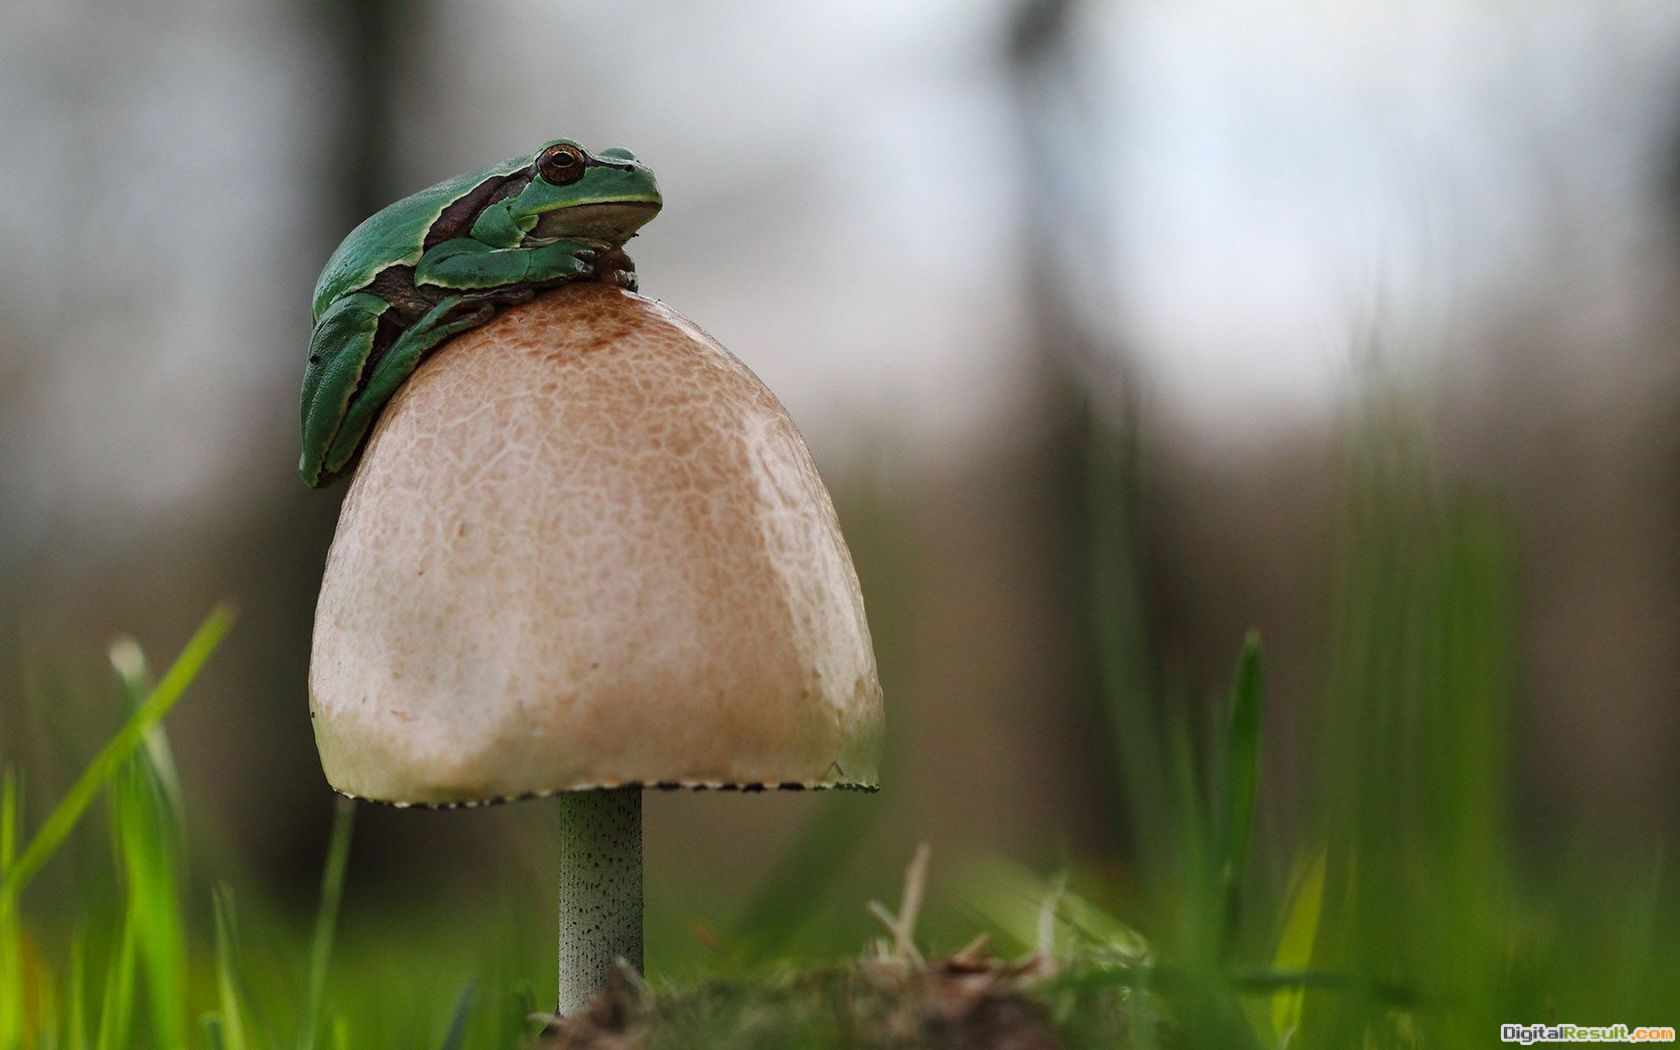 Small frog on thr mushroom Widescreen Wallpaper#19693 1930